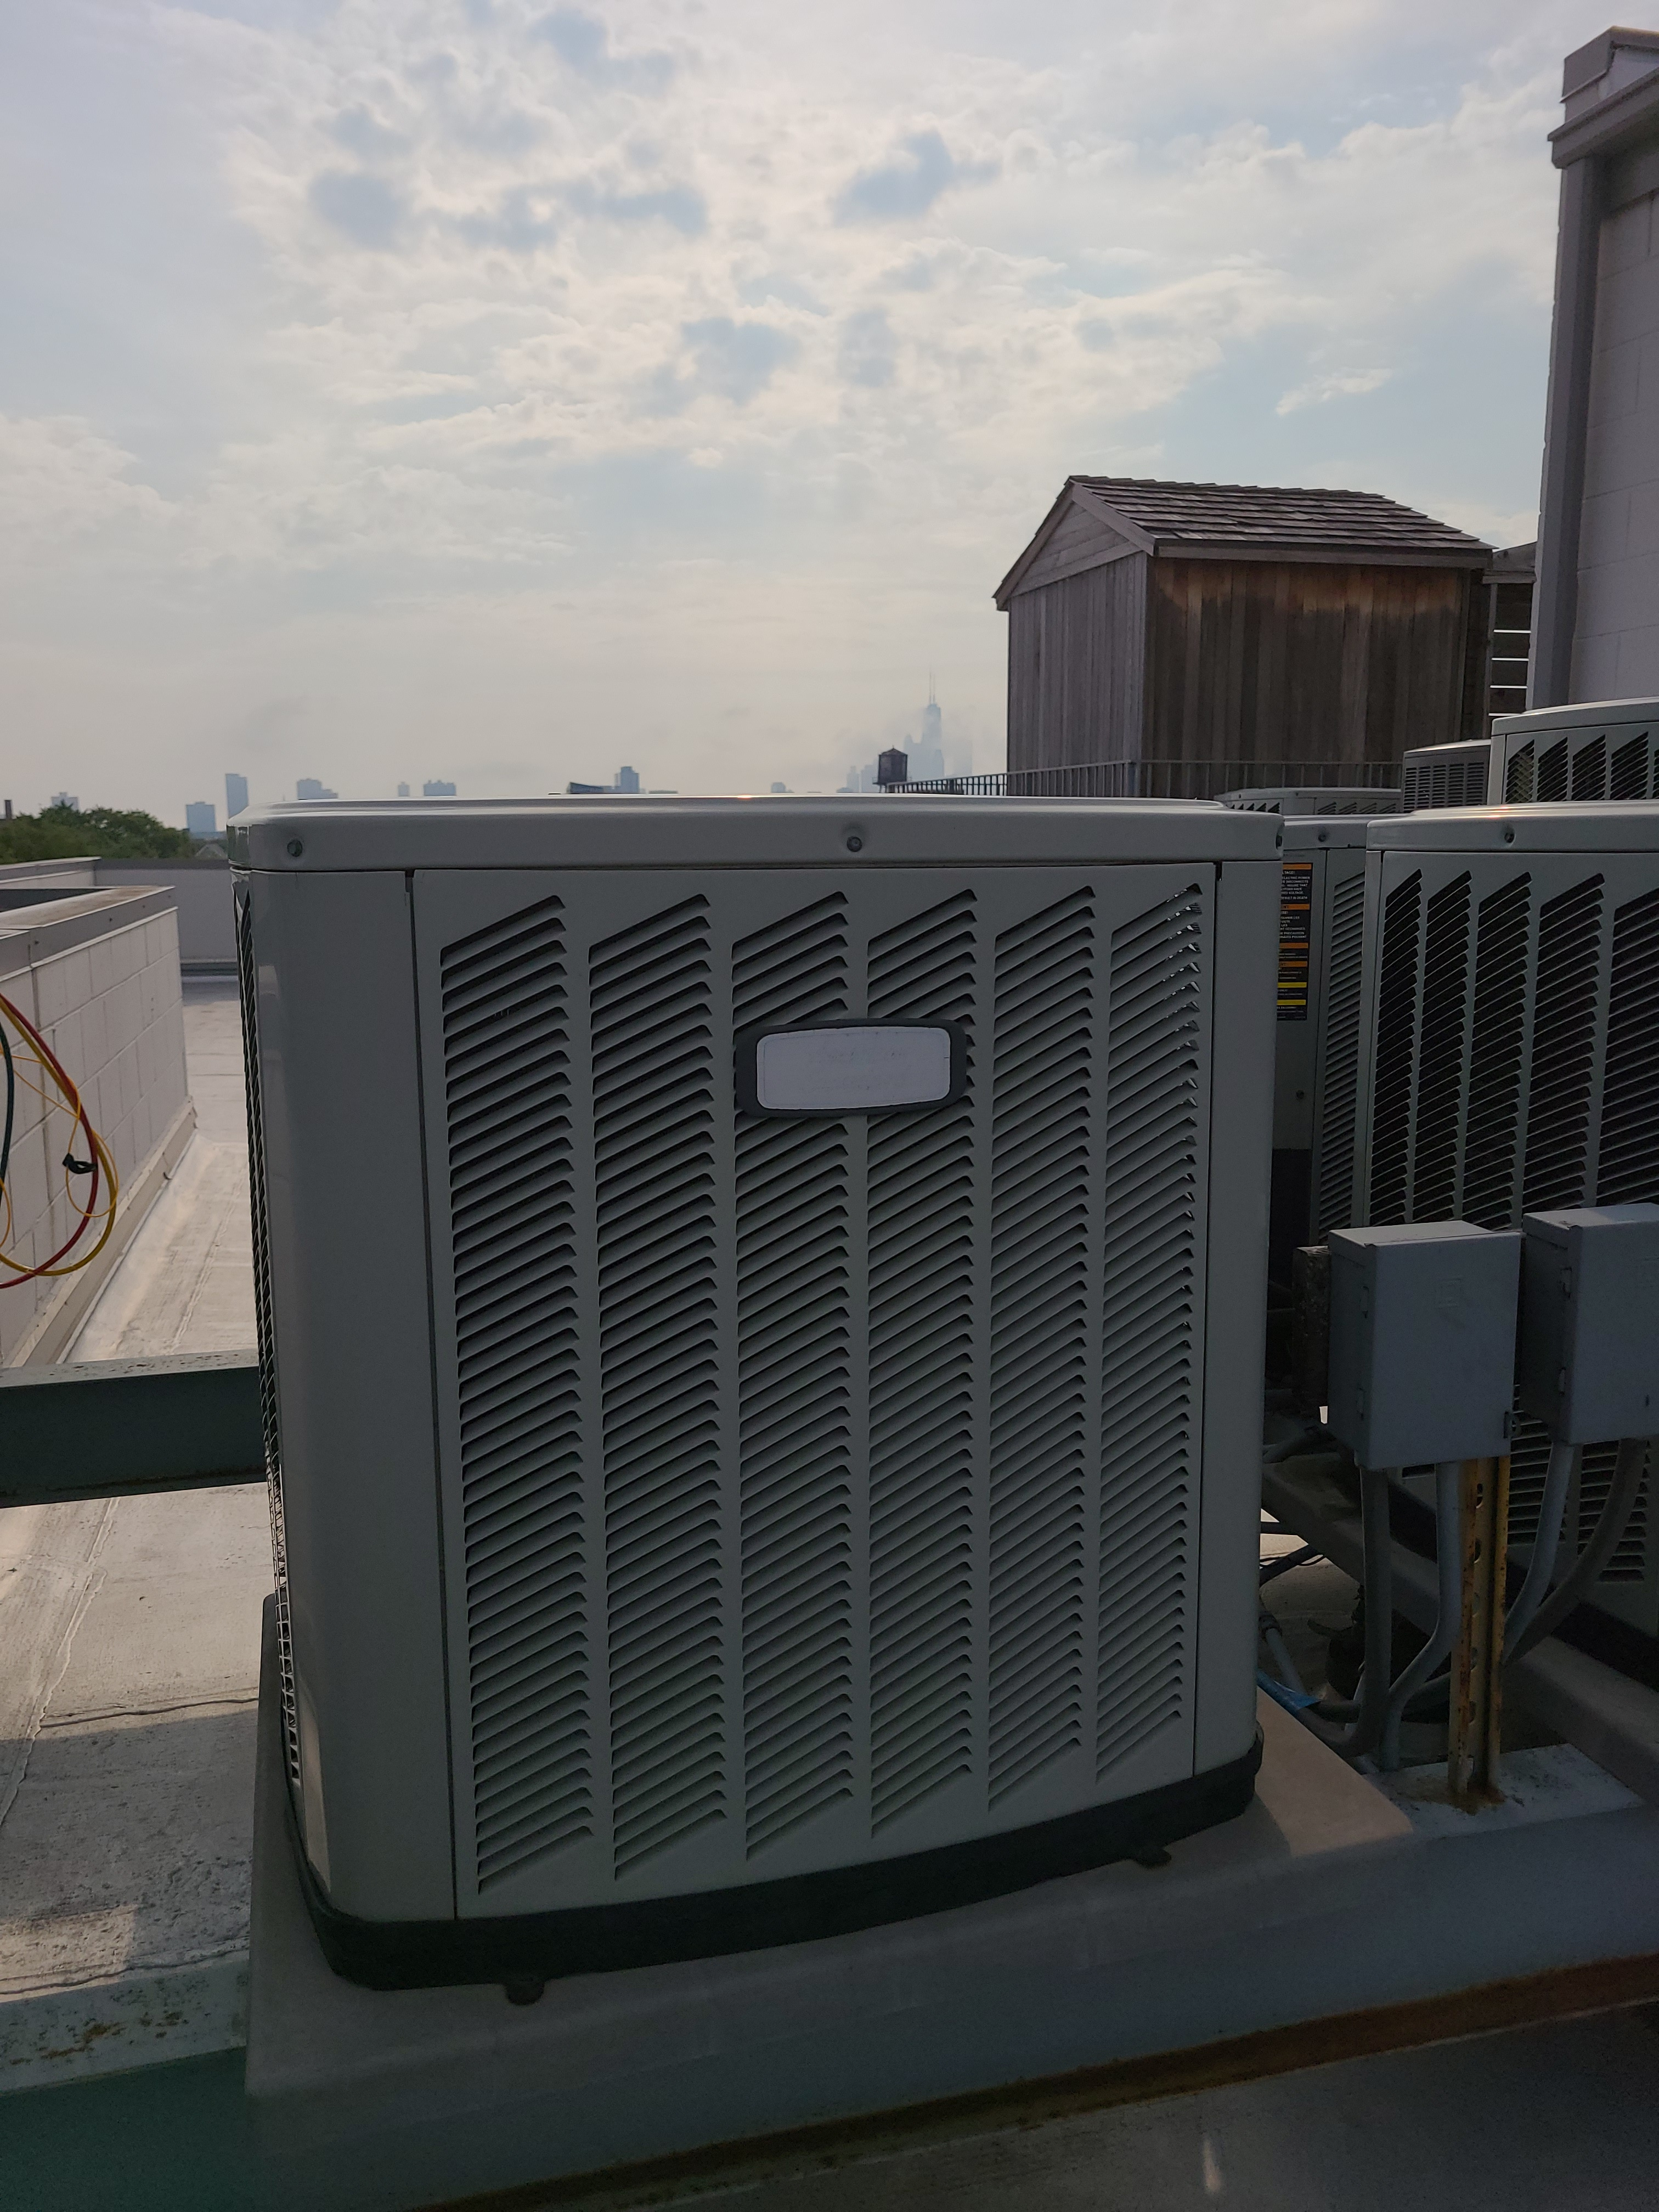 Photo of American Standard condenser during tune up.